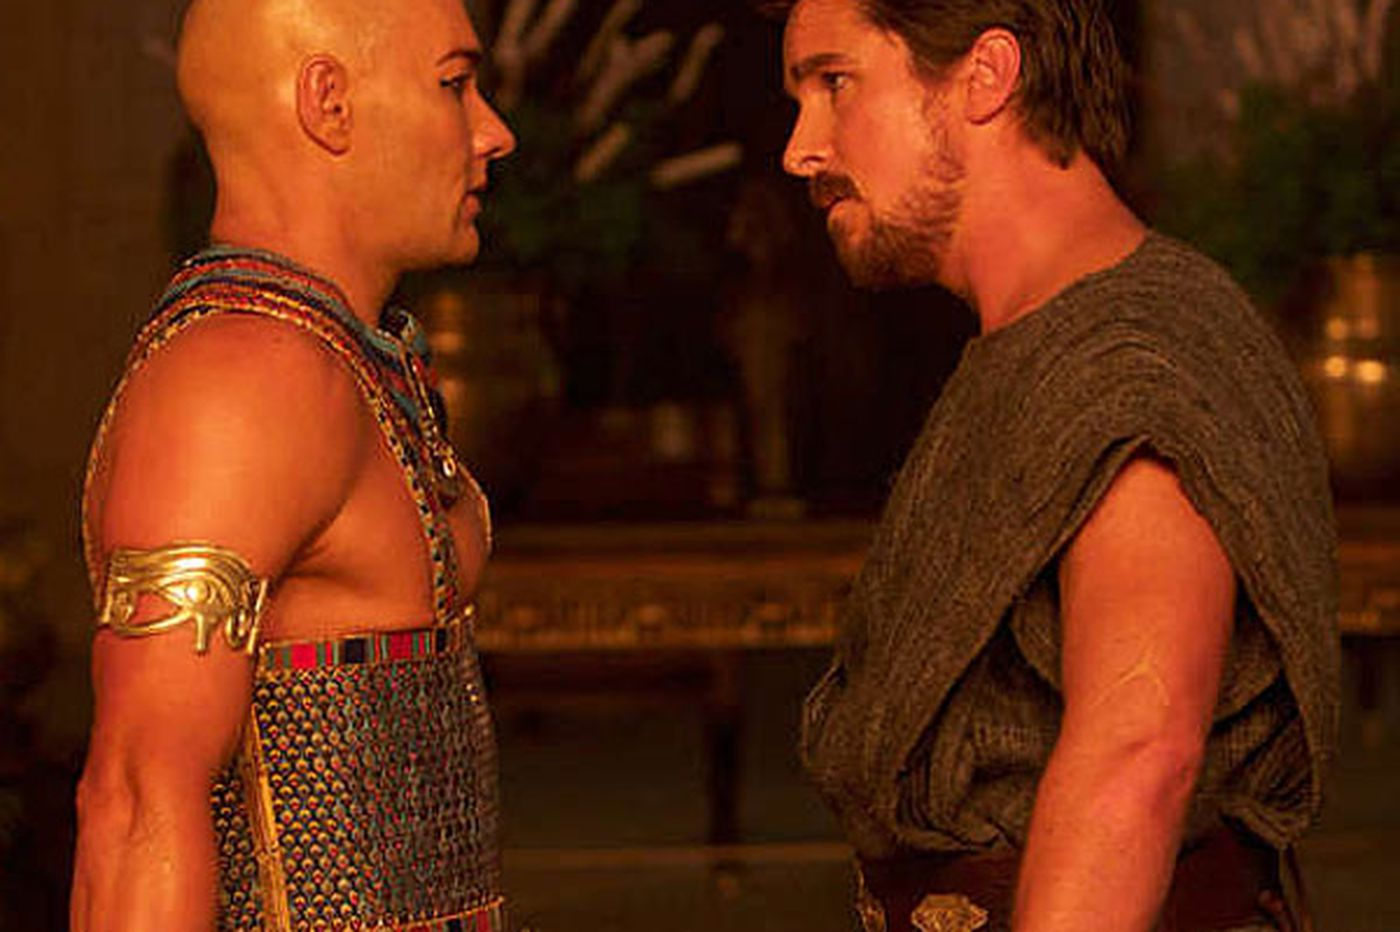 'Exodus: Gods and Kings': God as a bratty kid